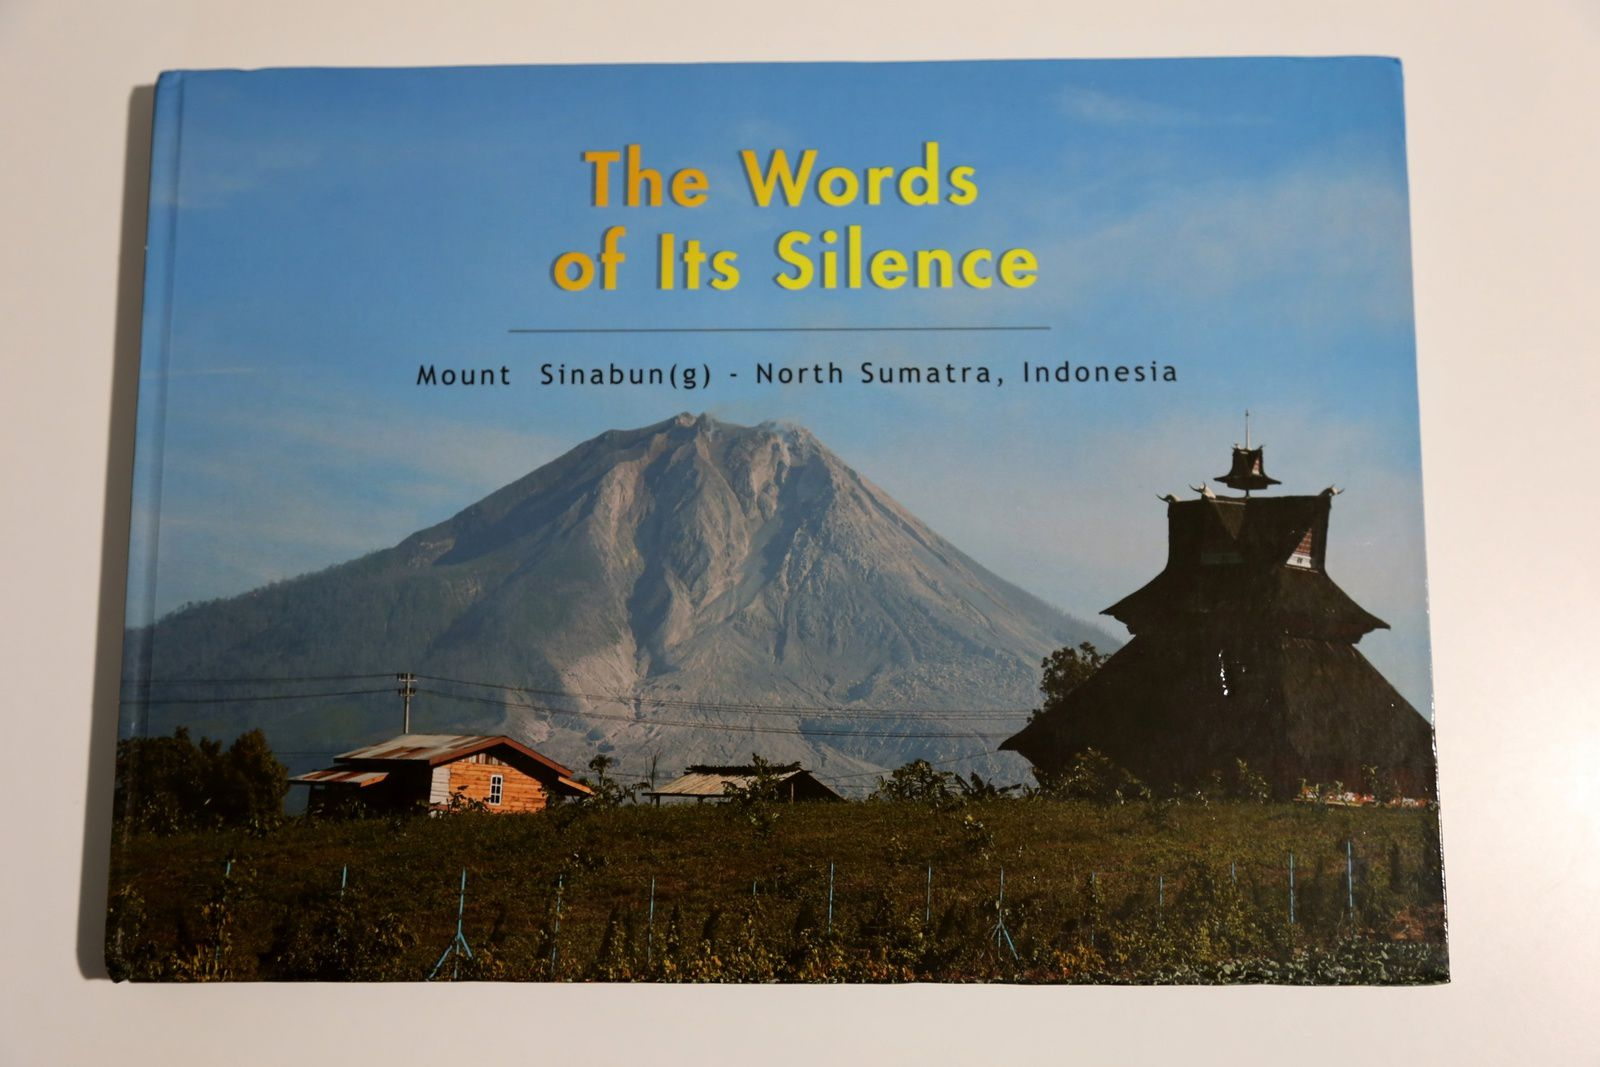 """The word of its Silence"" - Alumni Association of Geology ITB"